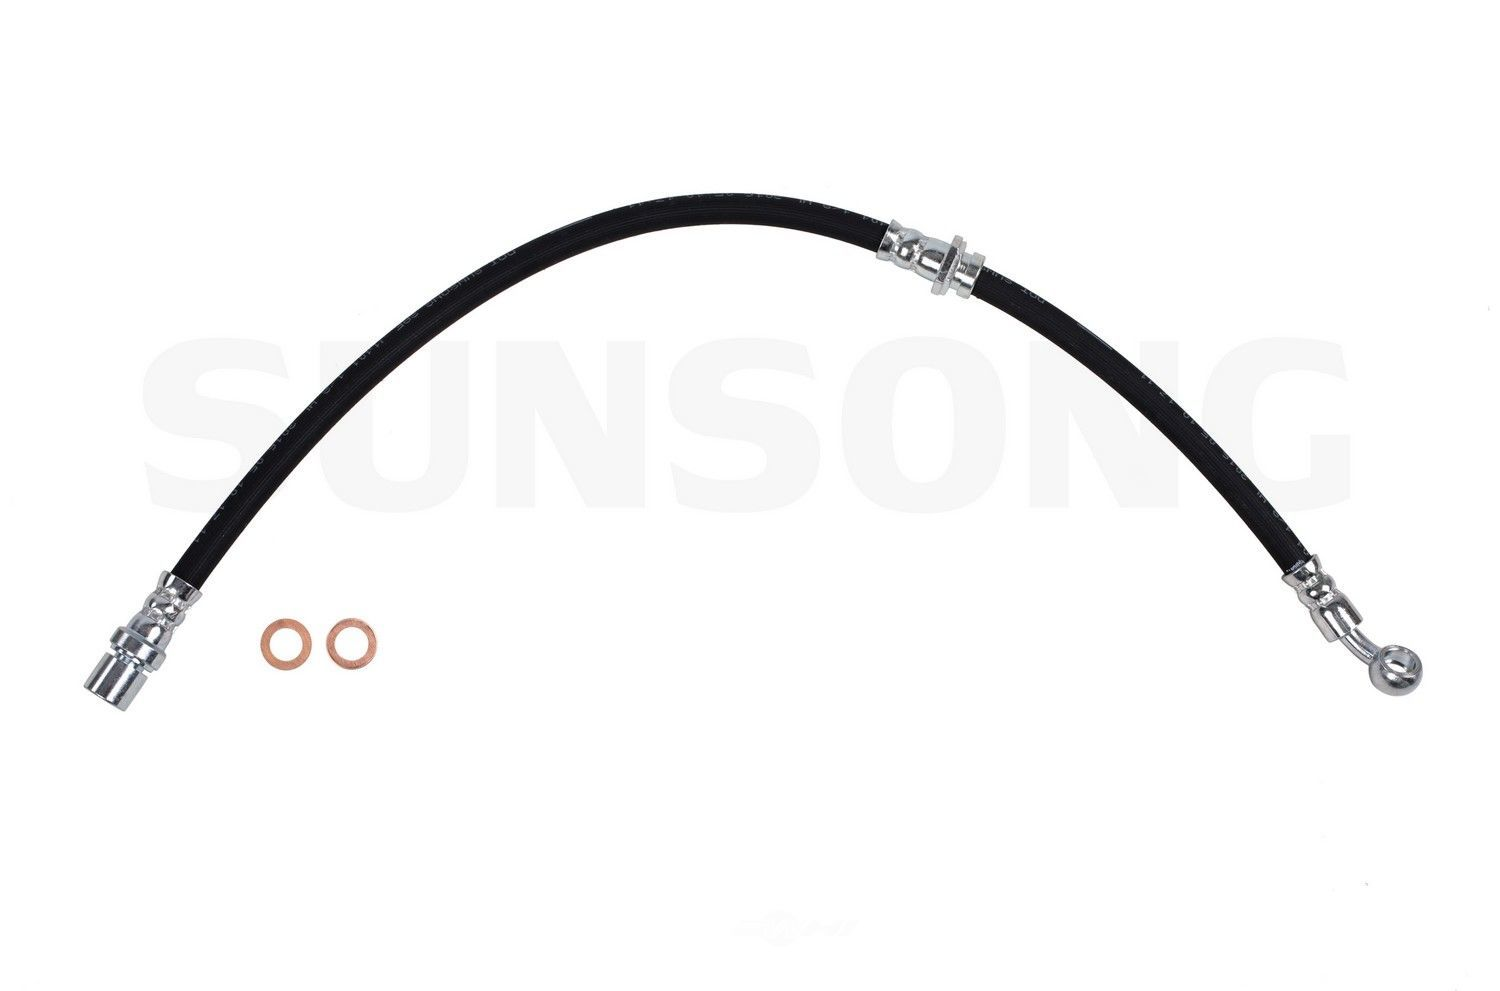 SUNSONG NORTH AMERICA - Brake Hydraulic Hose (Rear Right) - SUG 2205518